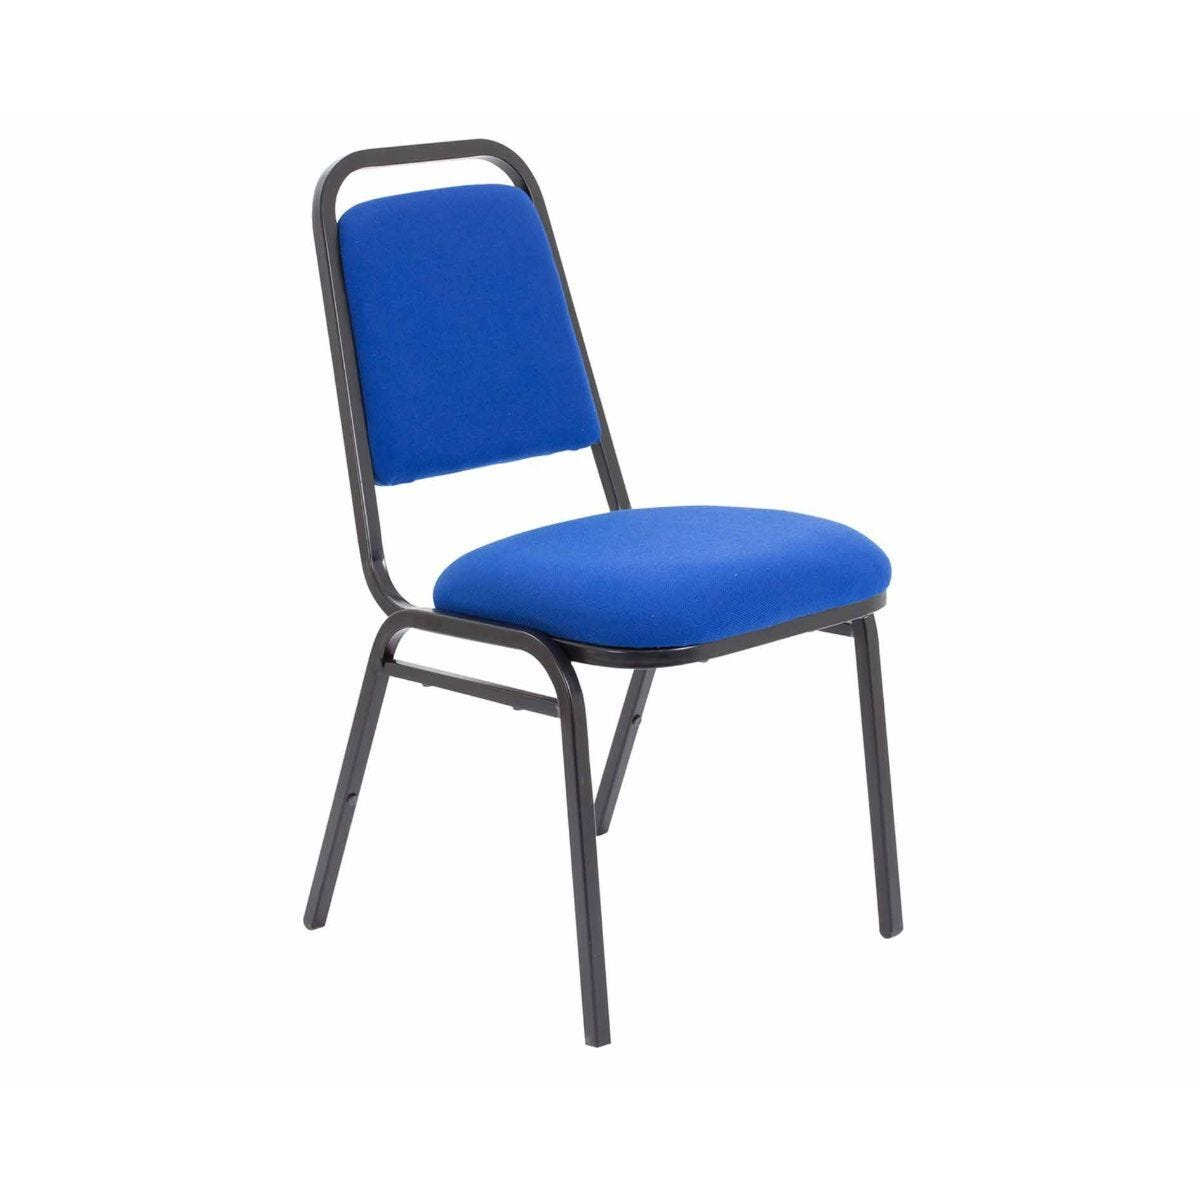 TC Office Padded Banqueting Chair Royal Blue